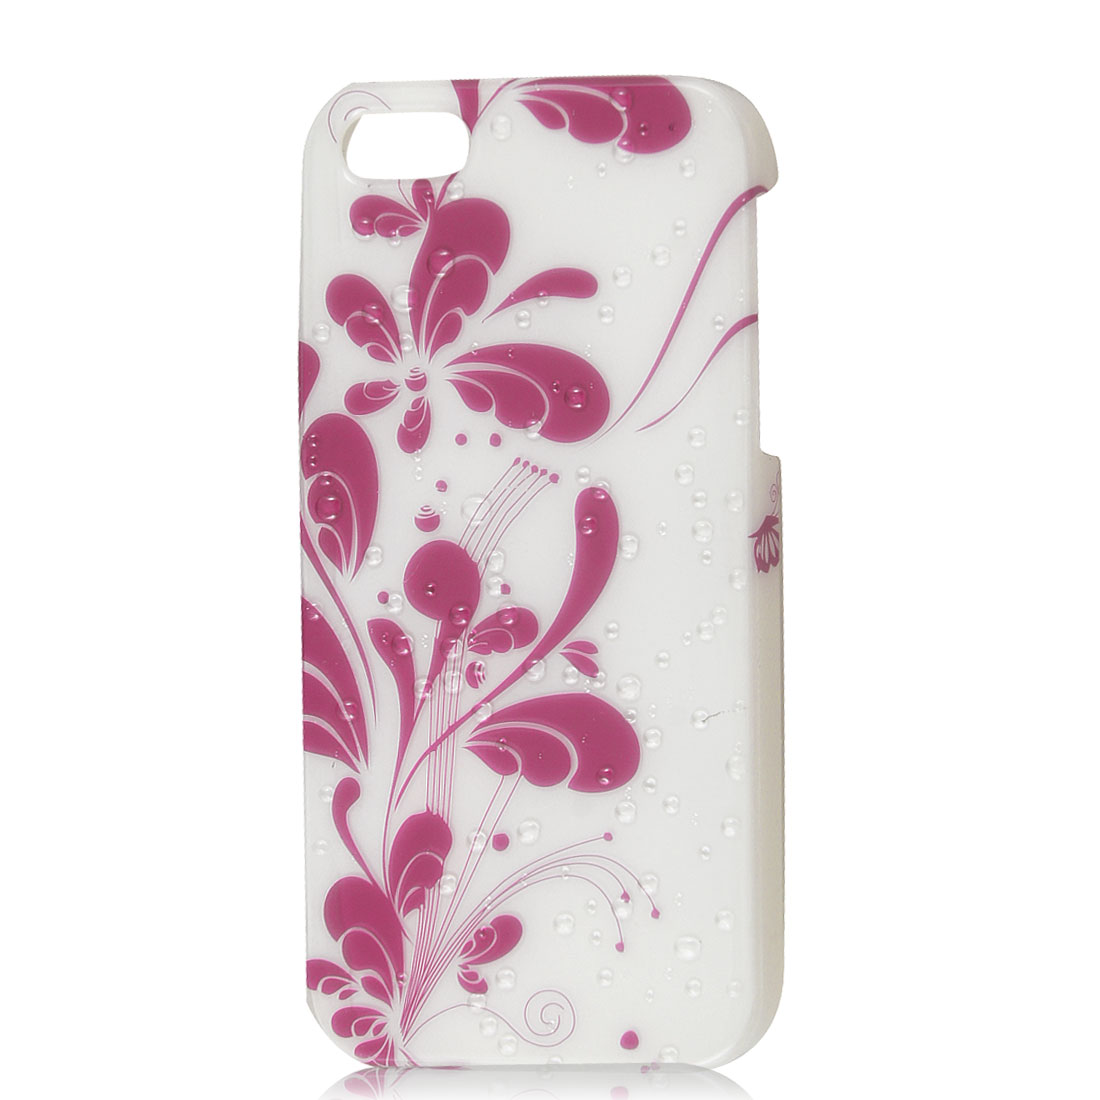 Fuchsia Flower 3D Water Droplet Raindrop Hard Back Case Cover for iPhone 5 5G